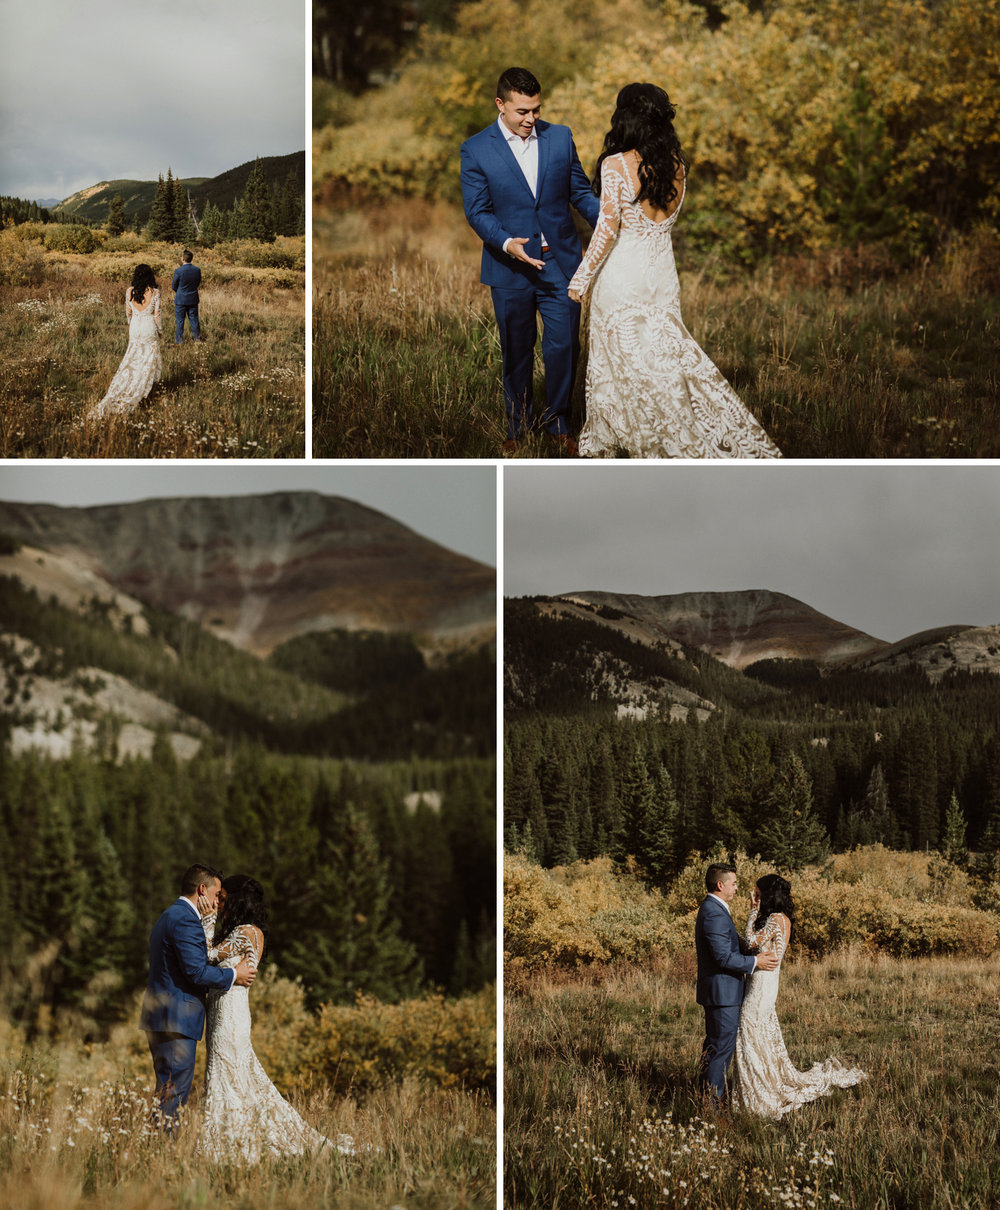 fall-elopement-wedding-breckenridge-colorado-125.jpg